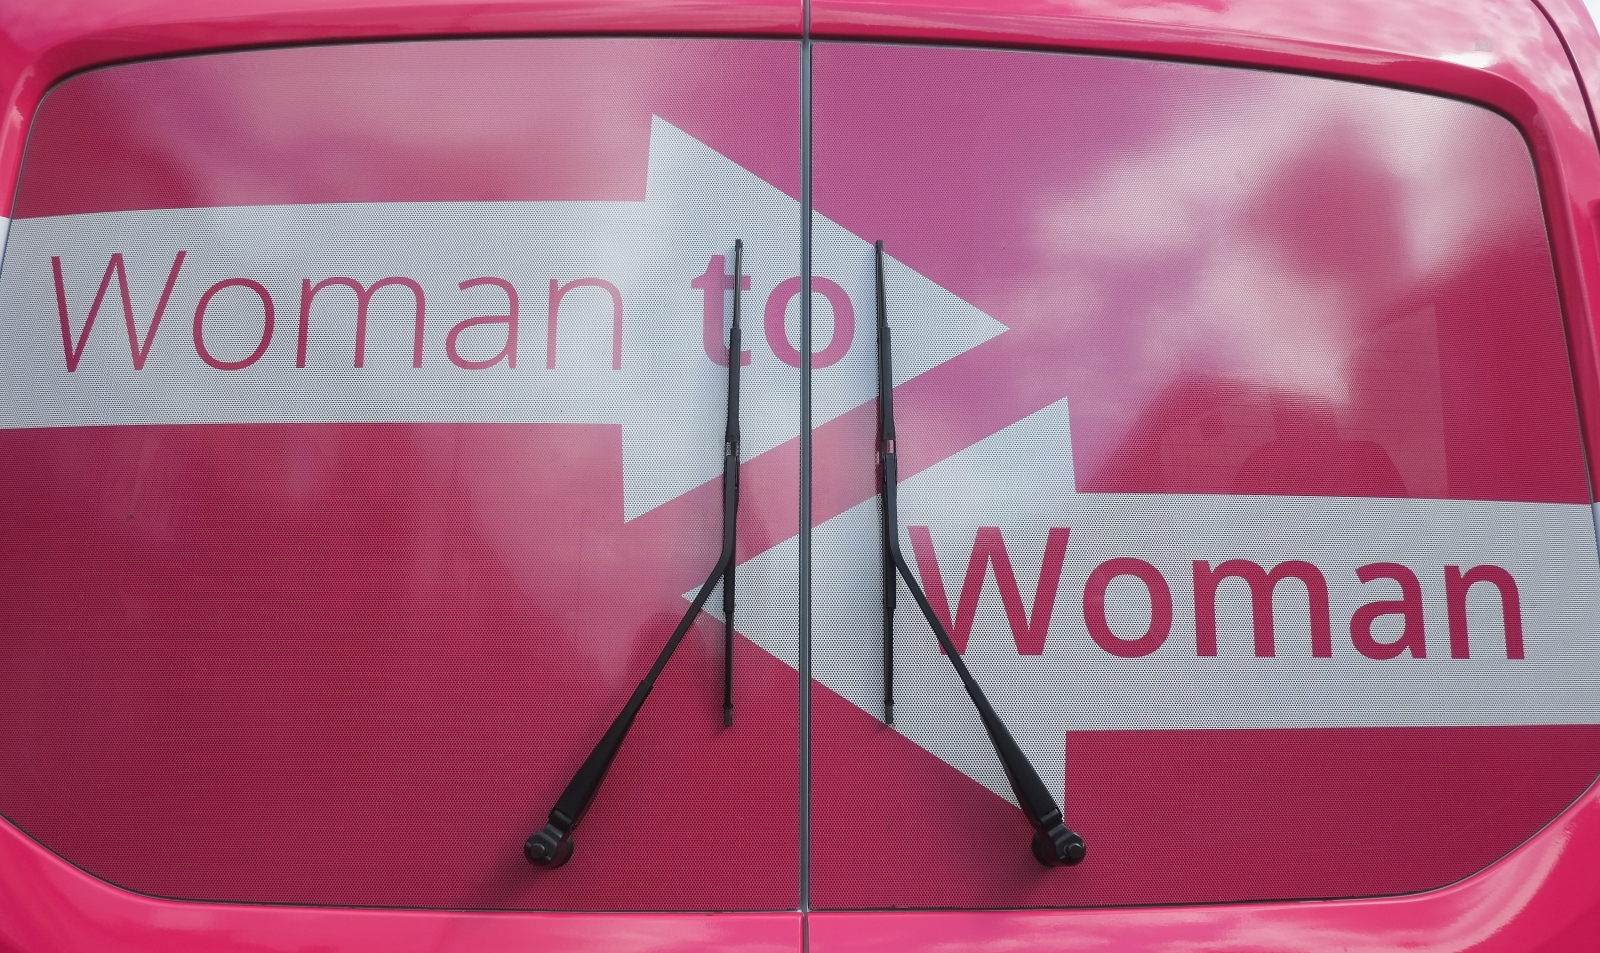 Labour pink bus